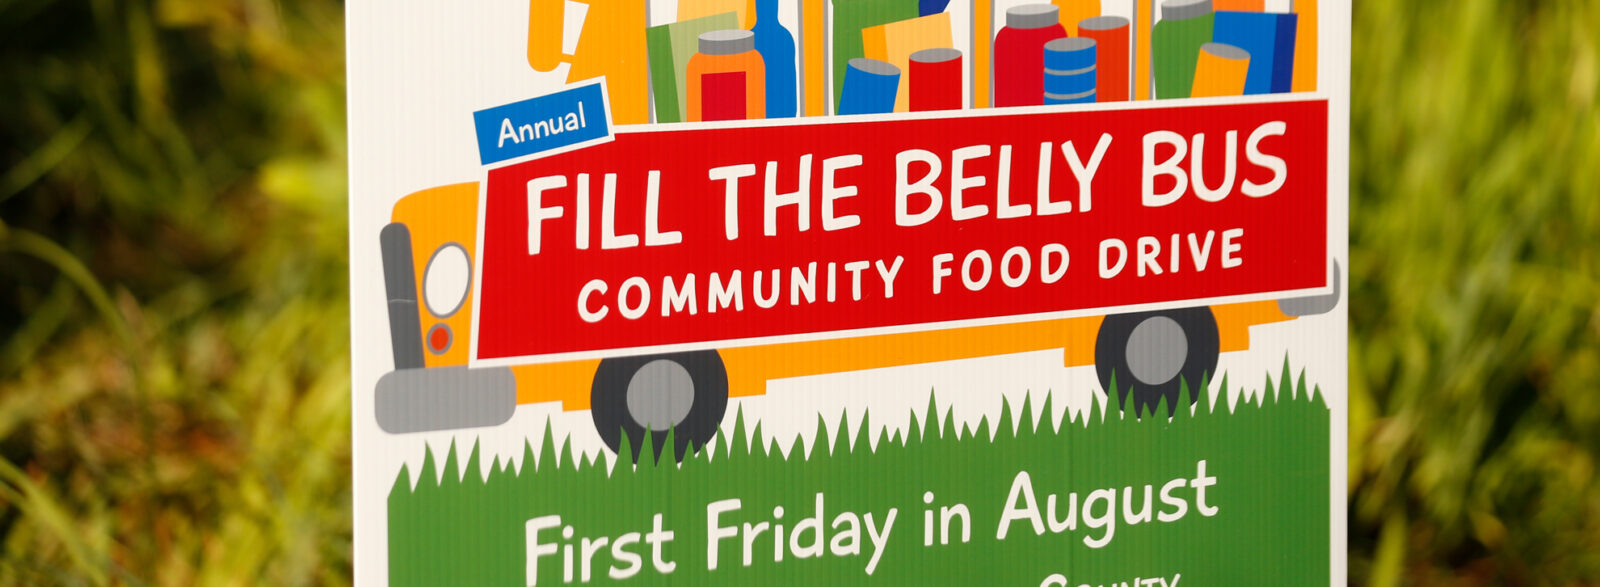 15th Annual Fill The Belly Bus Food Drive